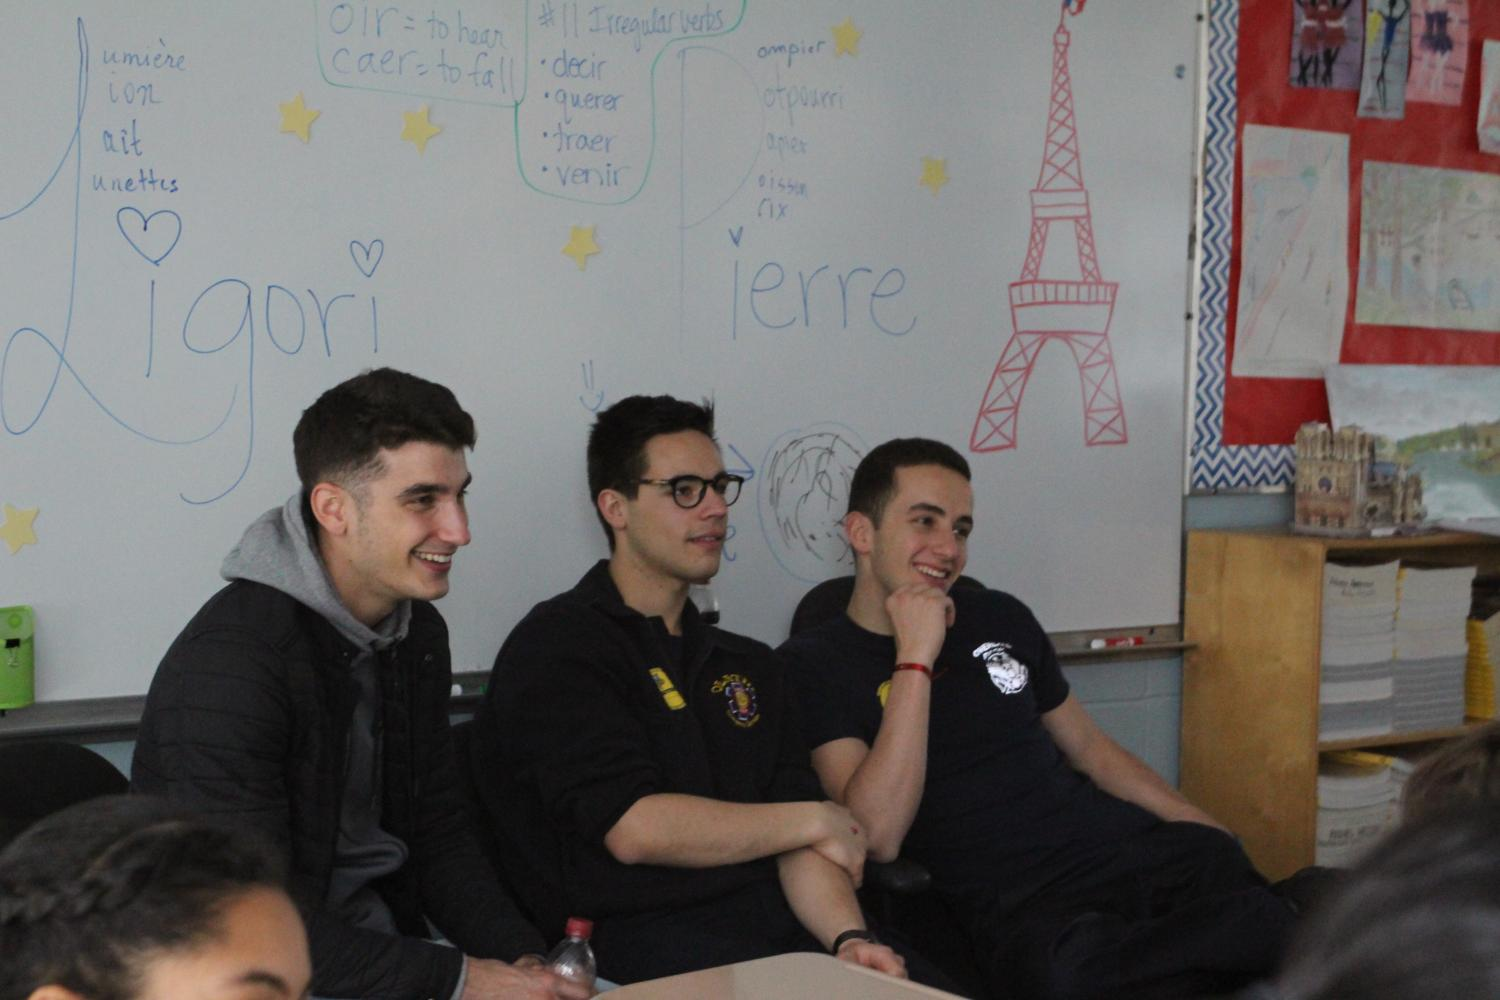 The+firefighters+talk+to+French+classes